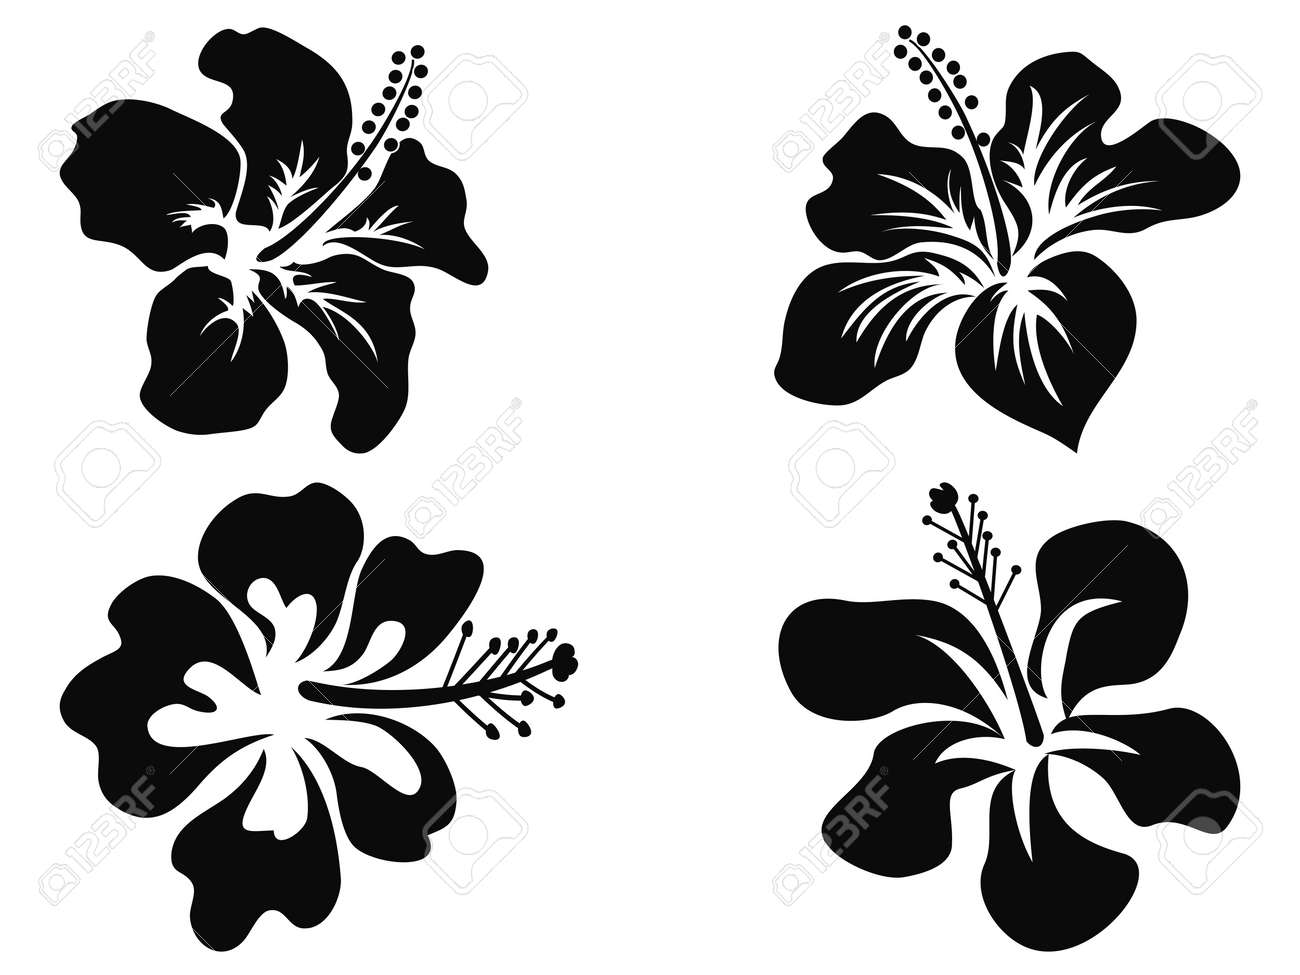 25154 Hibiscus Flower Cliparts Stock Vector And Royalty Free